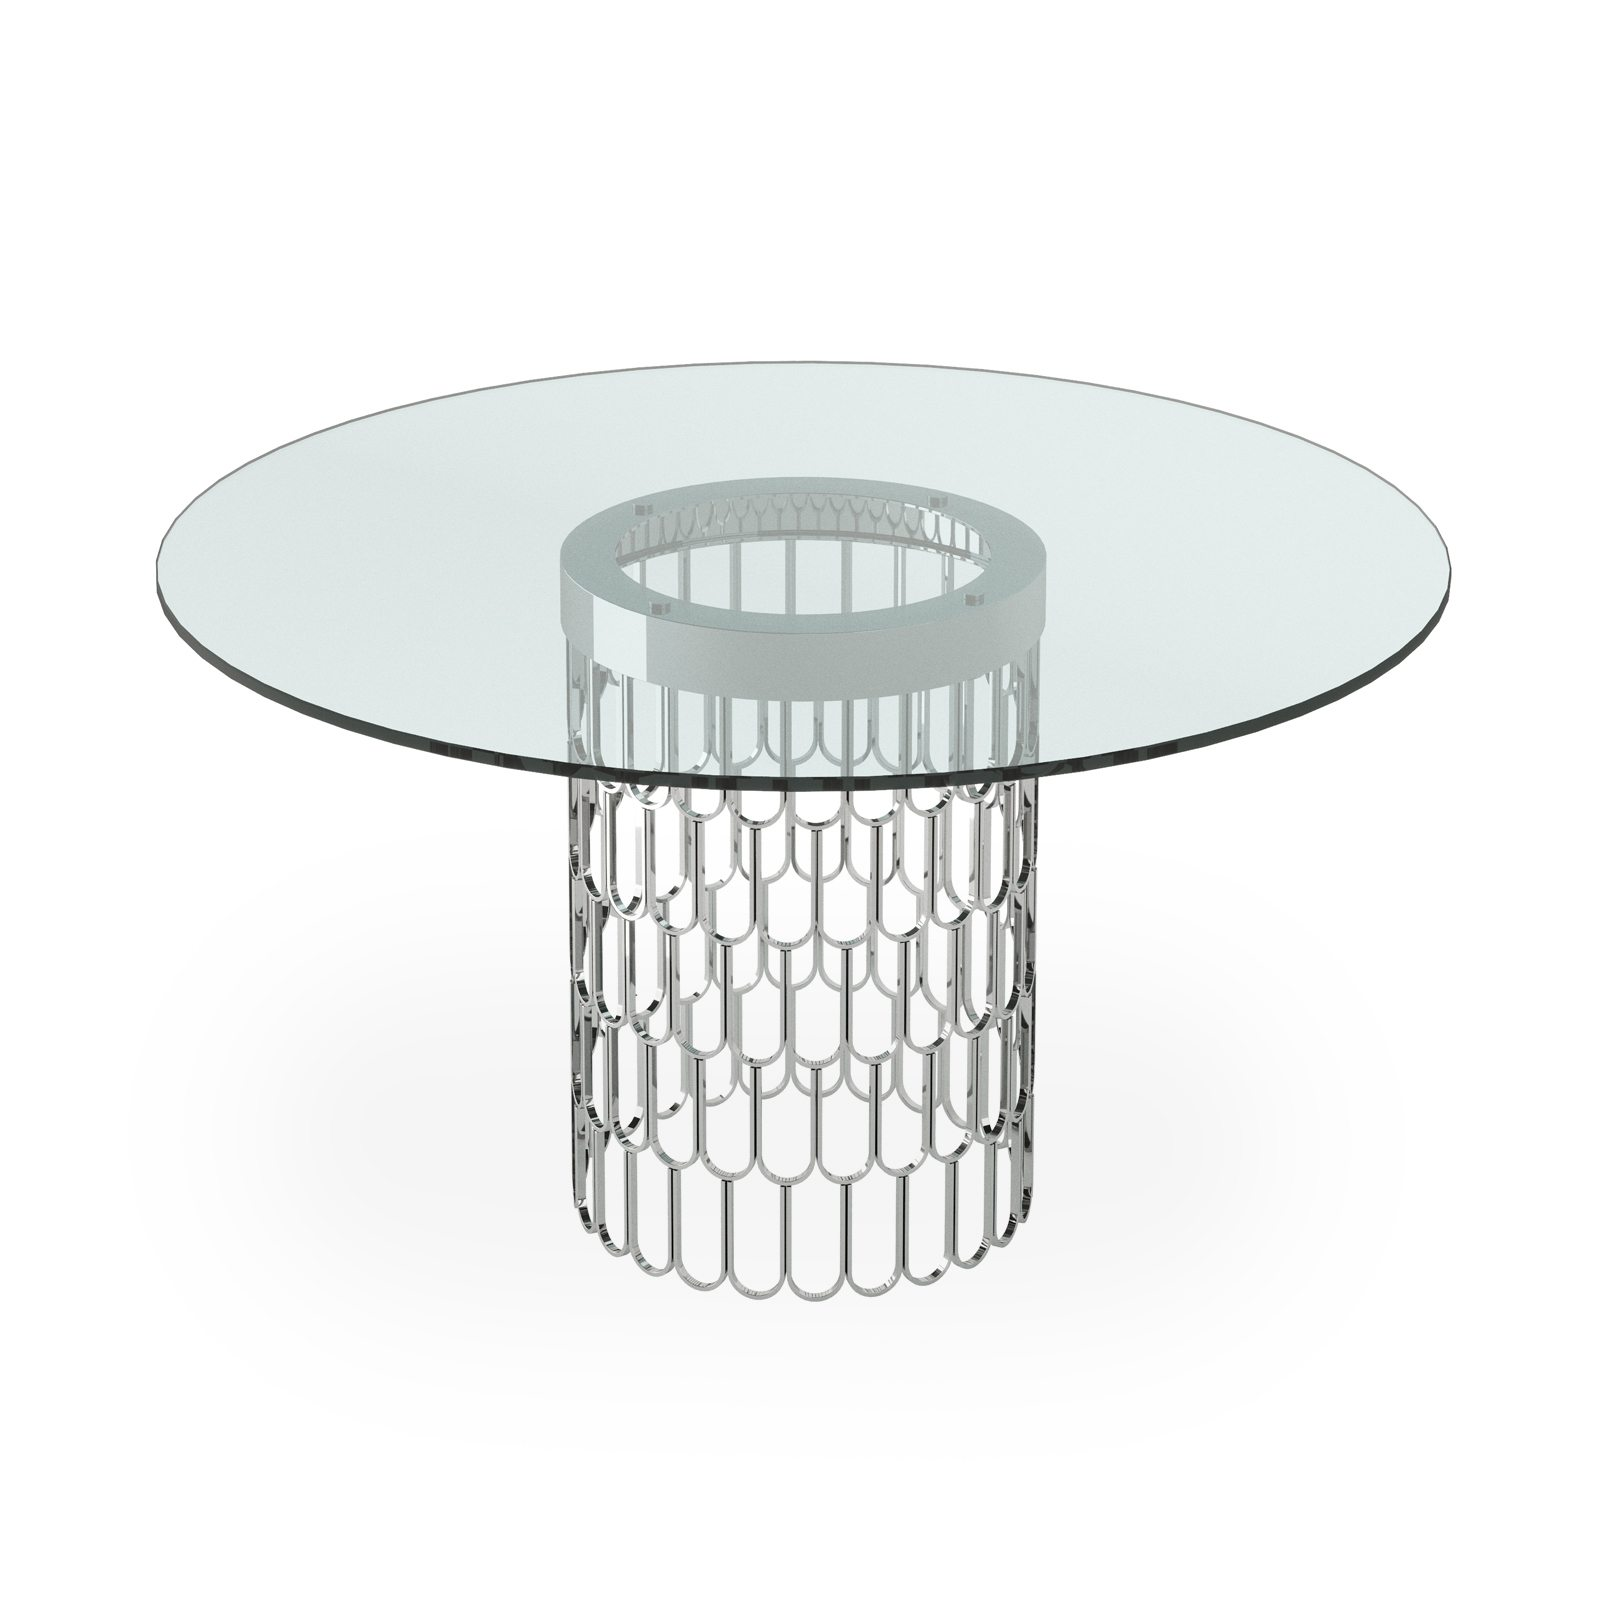 Feather-Dining-Table-Chrome-by-Bonham-&-Bonham-01